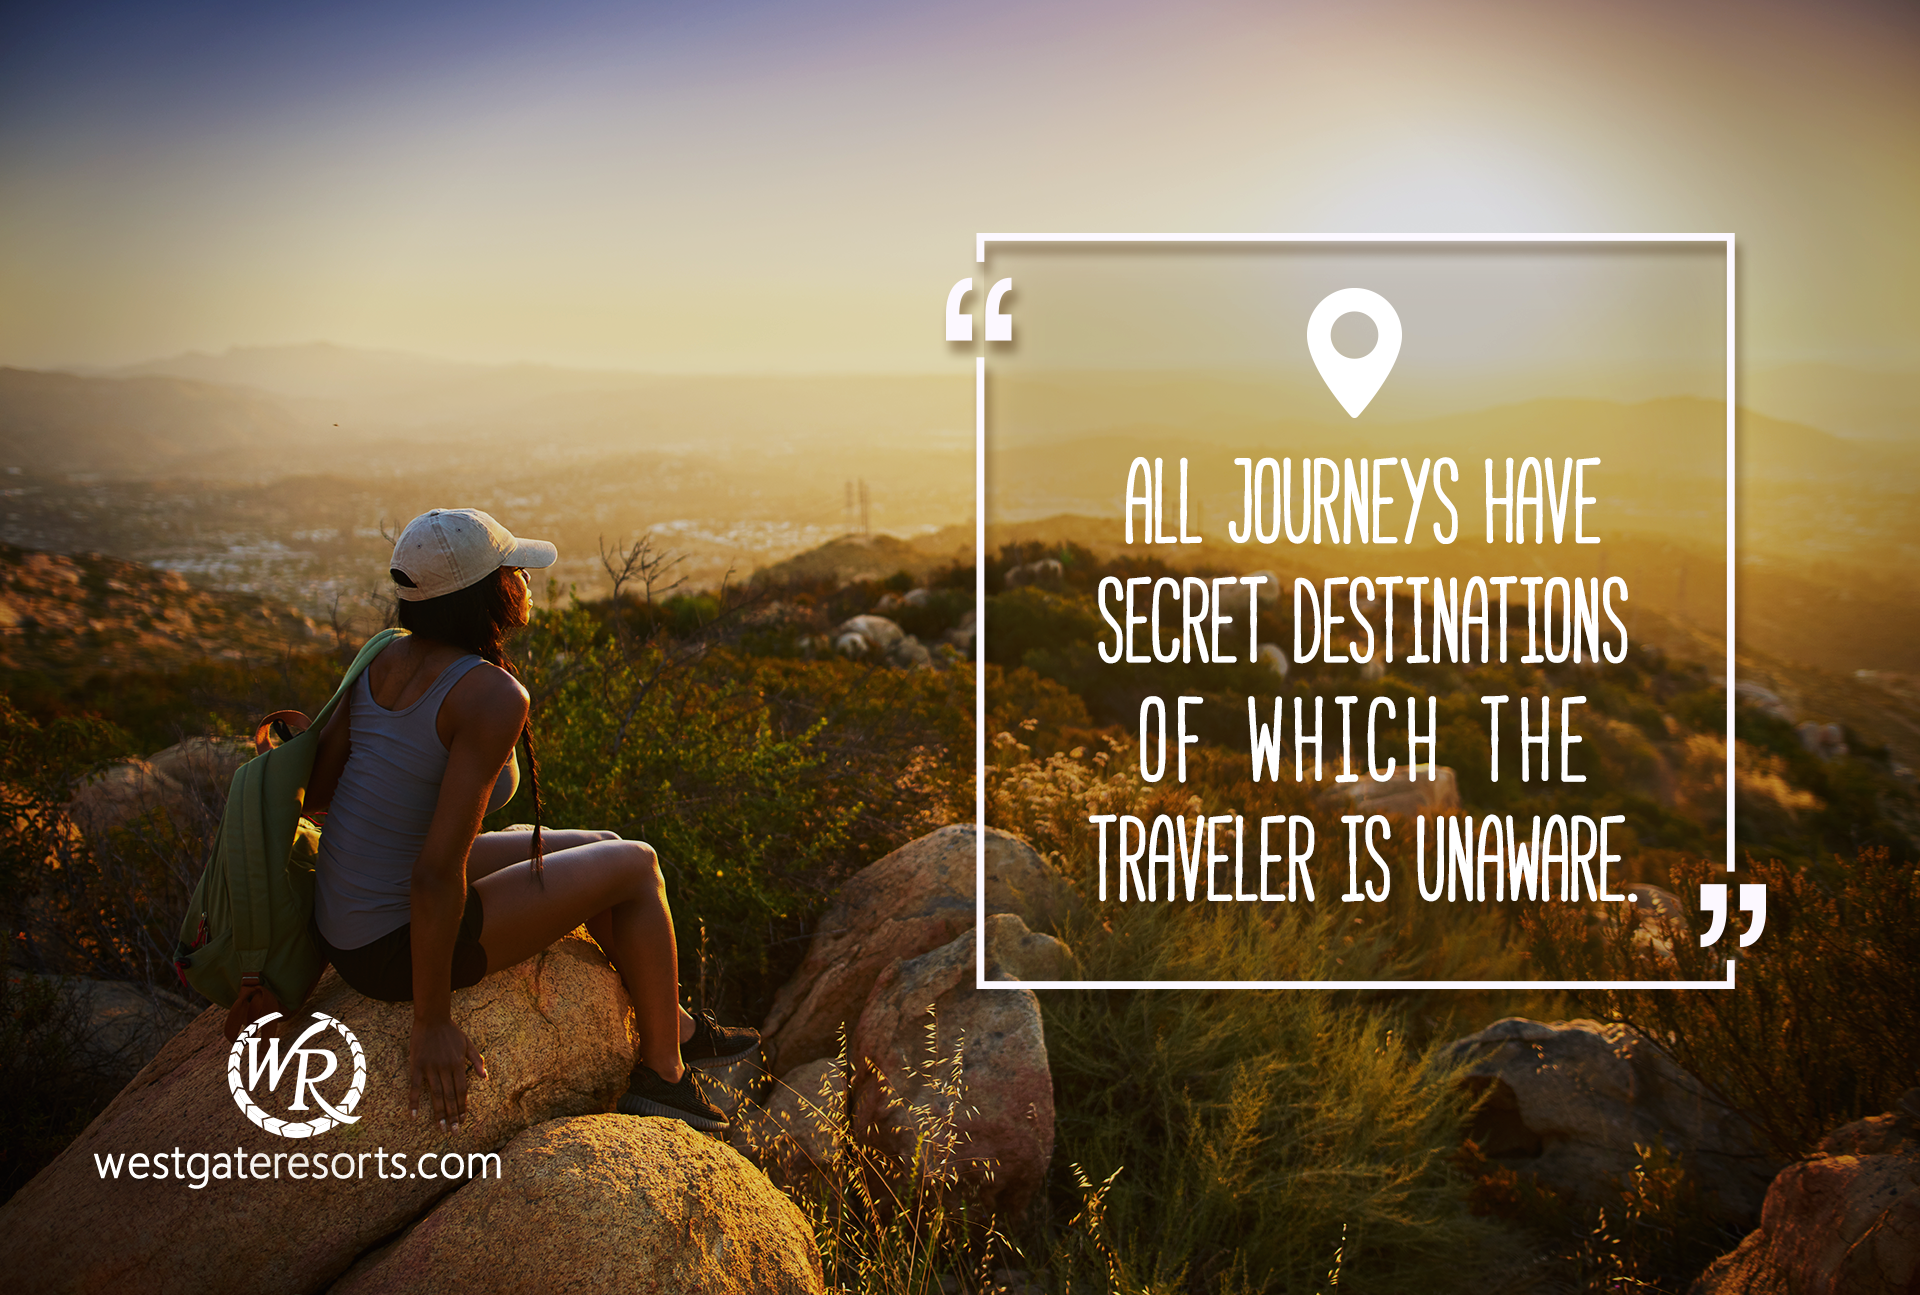 All journeys have secret destinations of which the traveler is unaware | Travel Motivation Quotes | Inspirational Travel Sayings